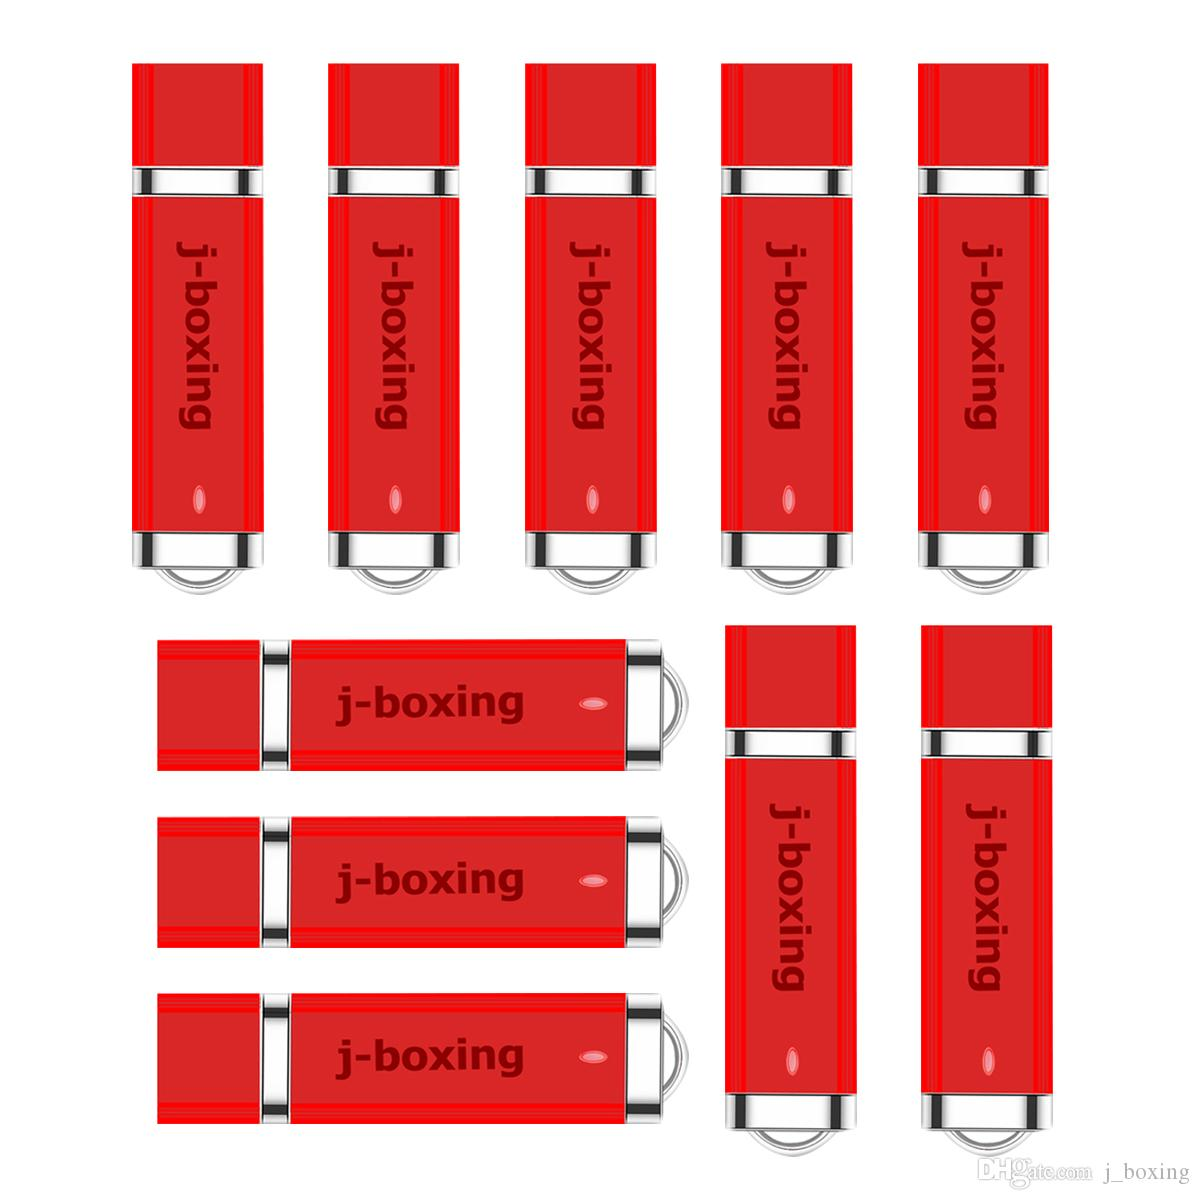 10PCS Red Lighter Model USB 2.0 Flash Drives Pen Drives USB Memory Stick 64M 128M 256M 512M 1G 2G 4G 8G 16G 32G for PC Laptop Thumb Storage